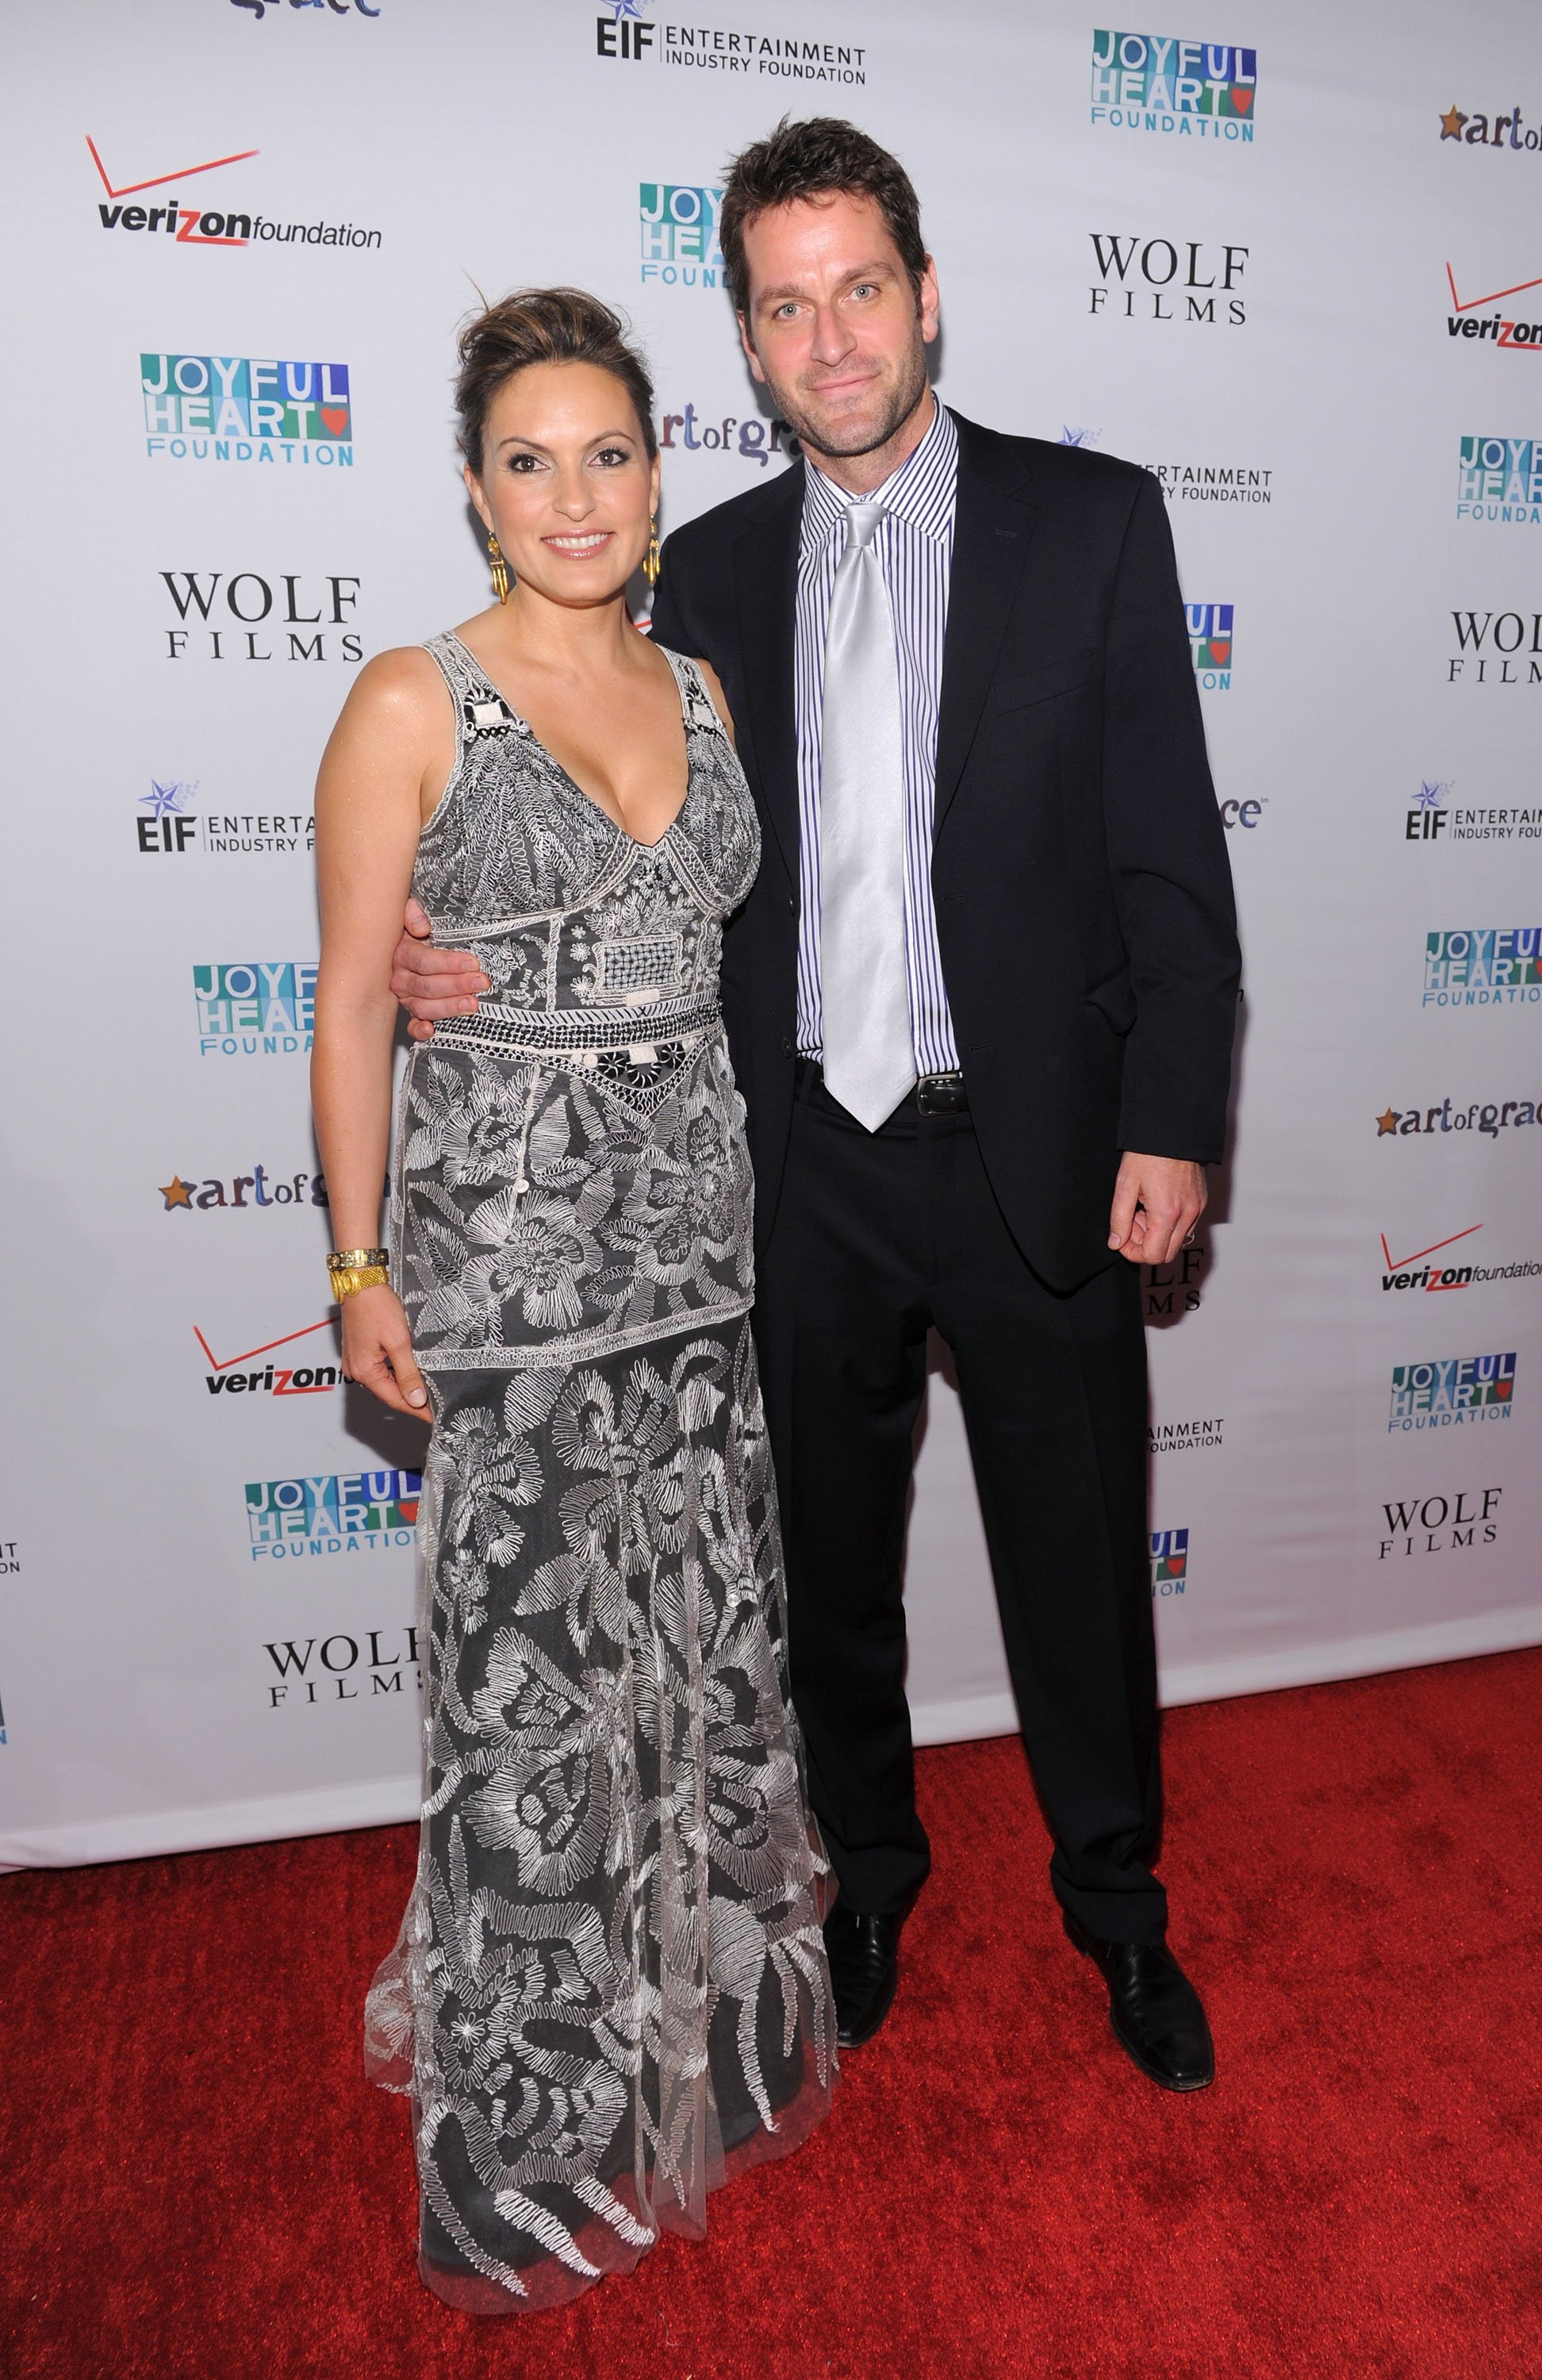 Mariska Hargitay and Peter Hermann attend the 2011 Joyful Heart Foundation Gala at The Museum of Modern Art on May 17, 2011. | Photo: GettyImages